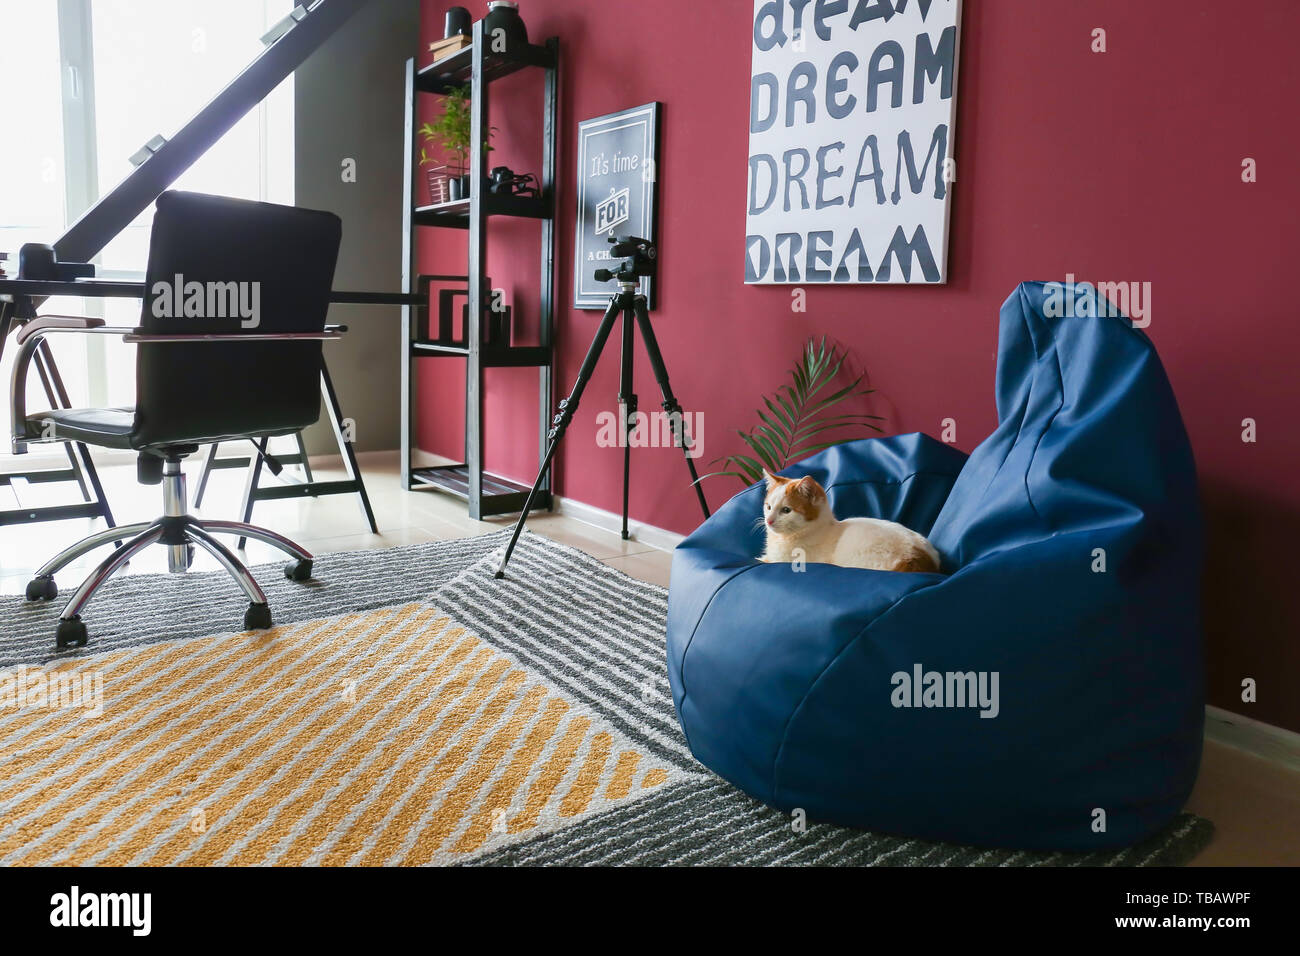 Cute cat sitting on bean bag chair in interior of room - Stock Image